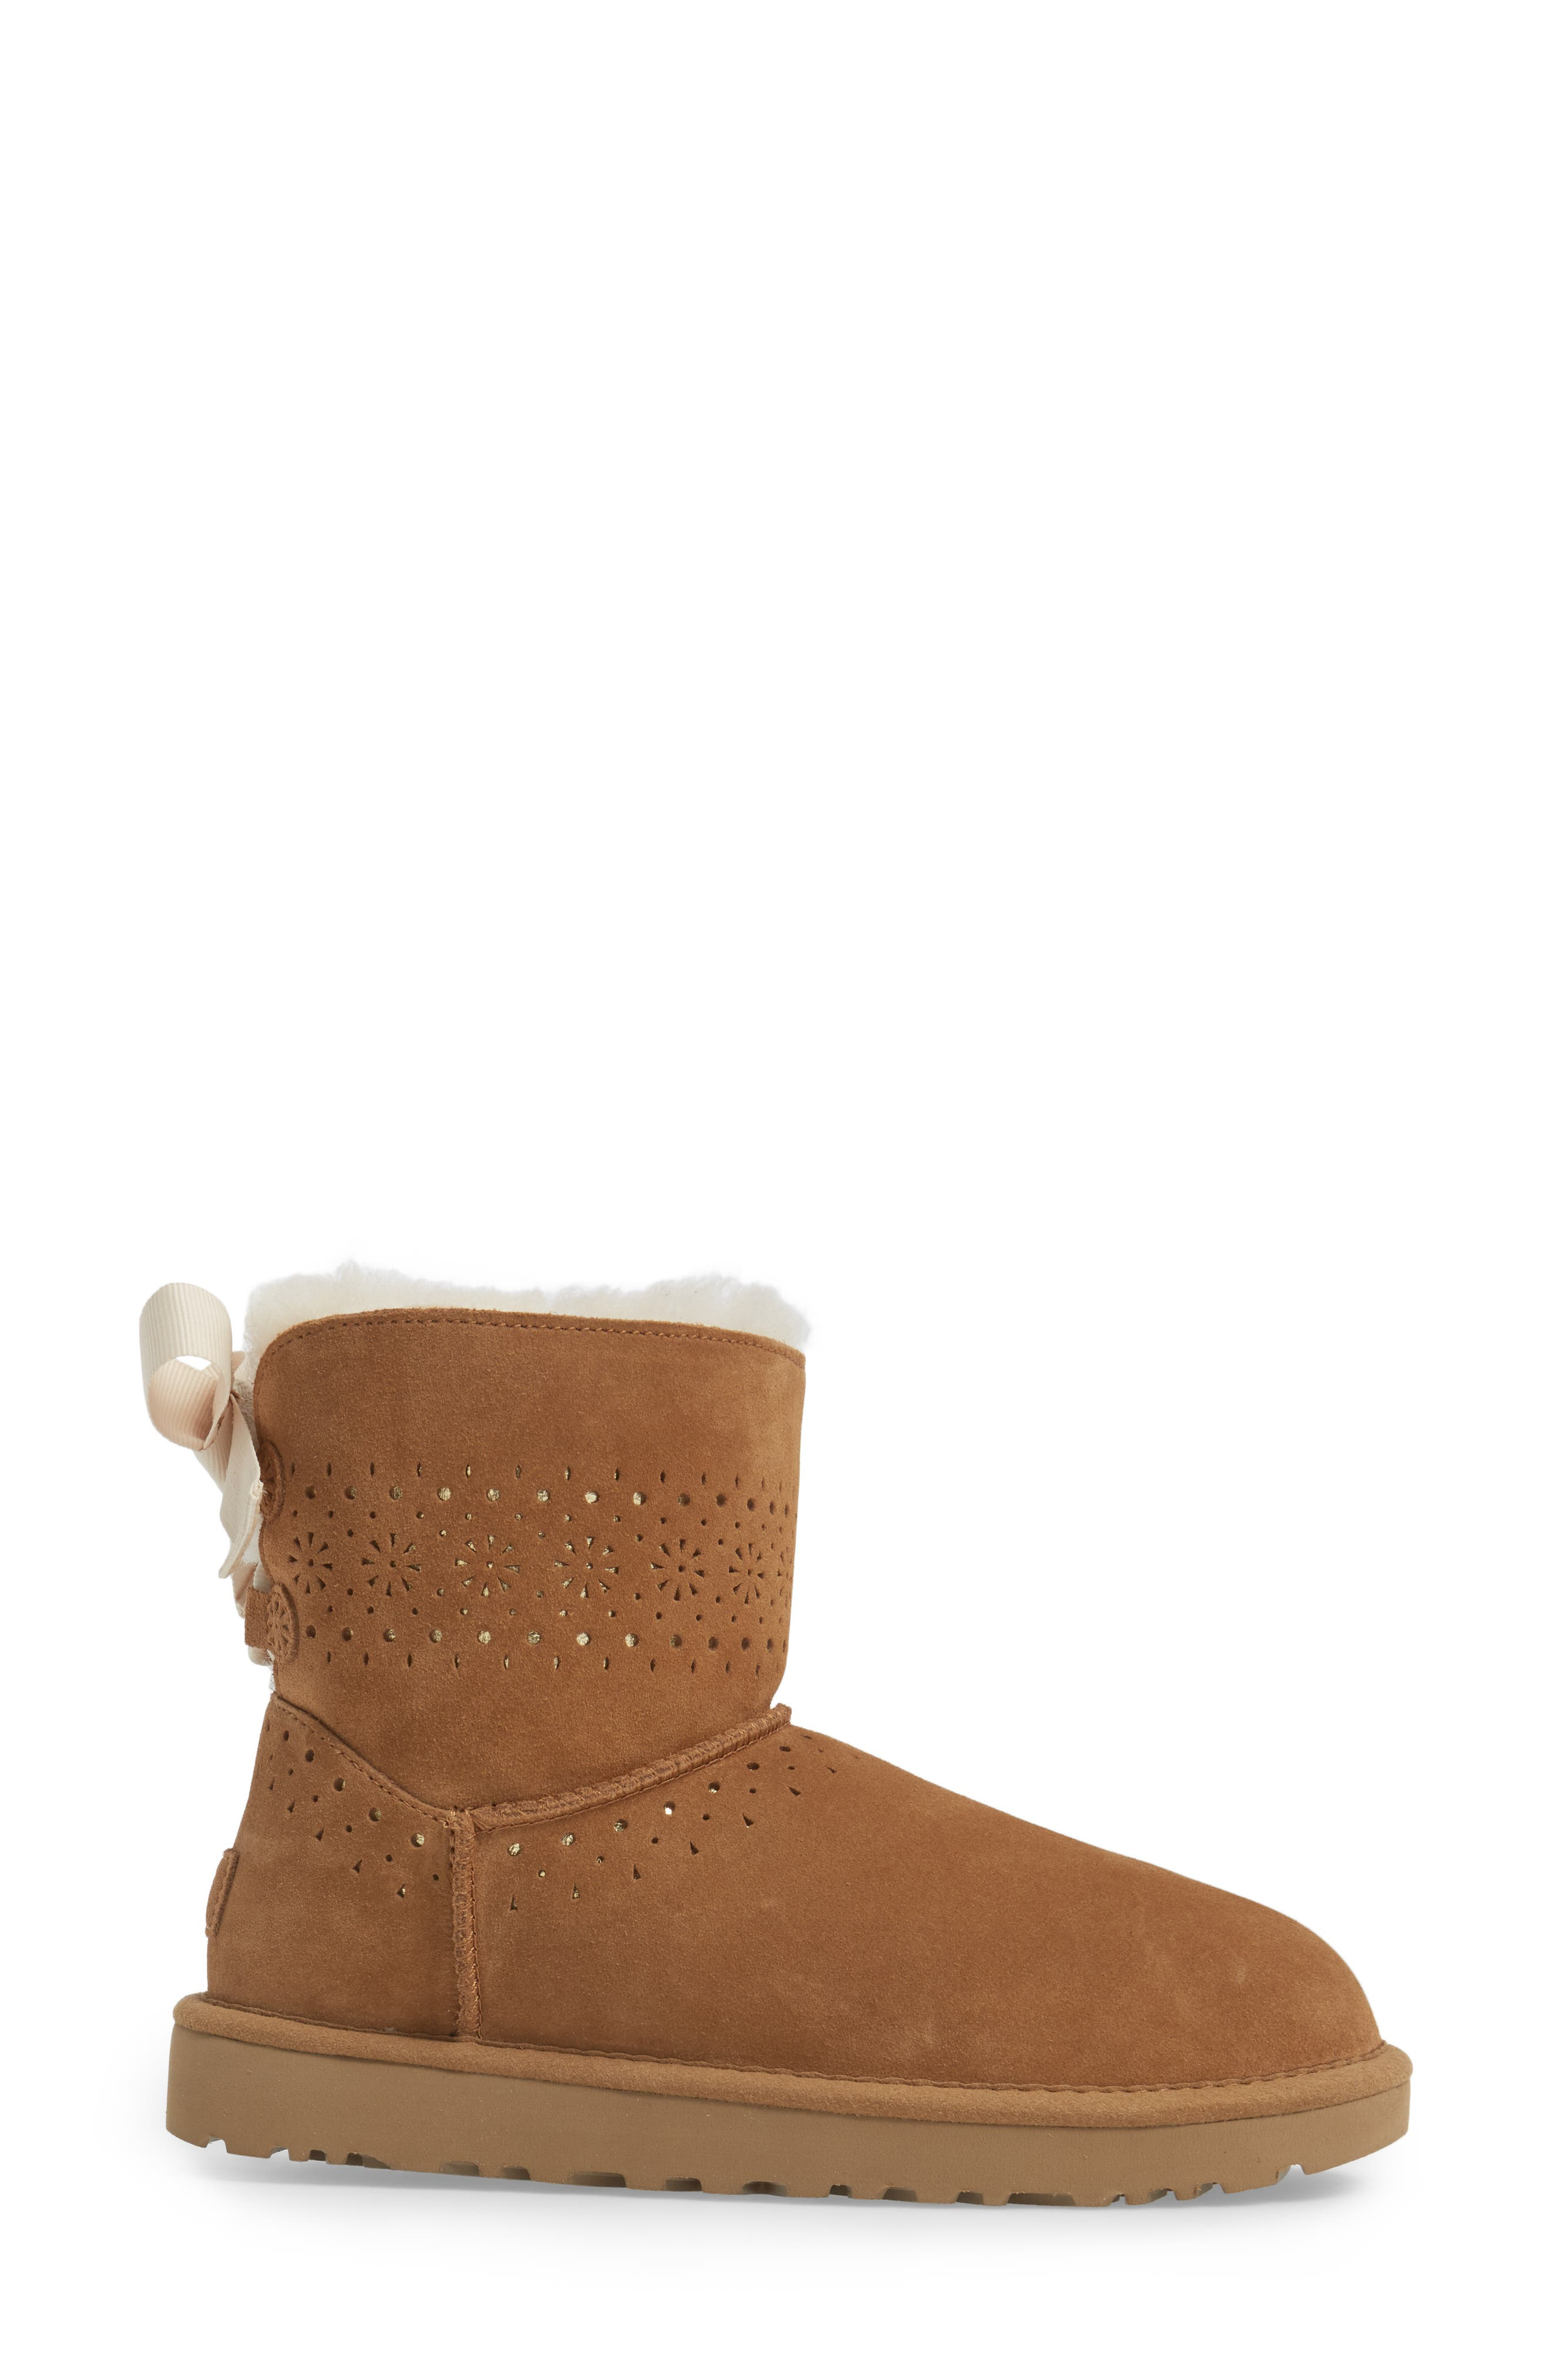 Alternate Image 3  - UGG® Dae Sunshine Boot (Women)